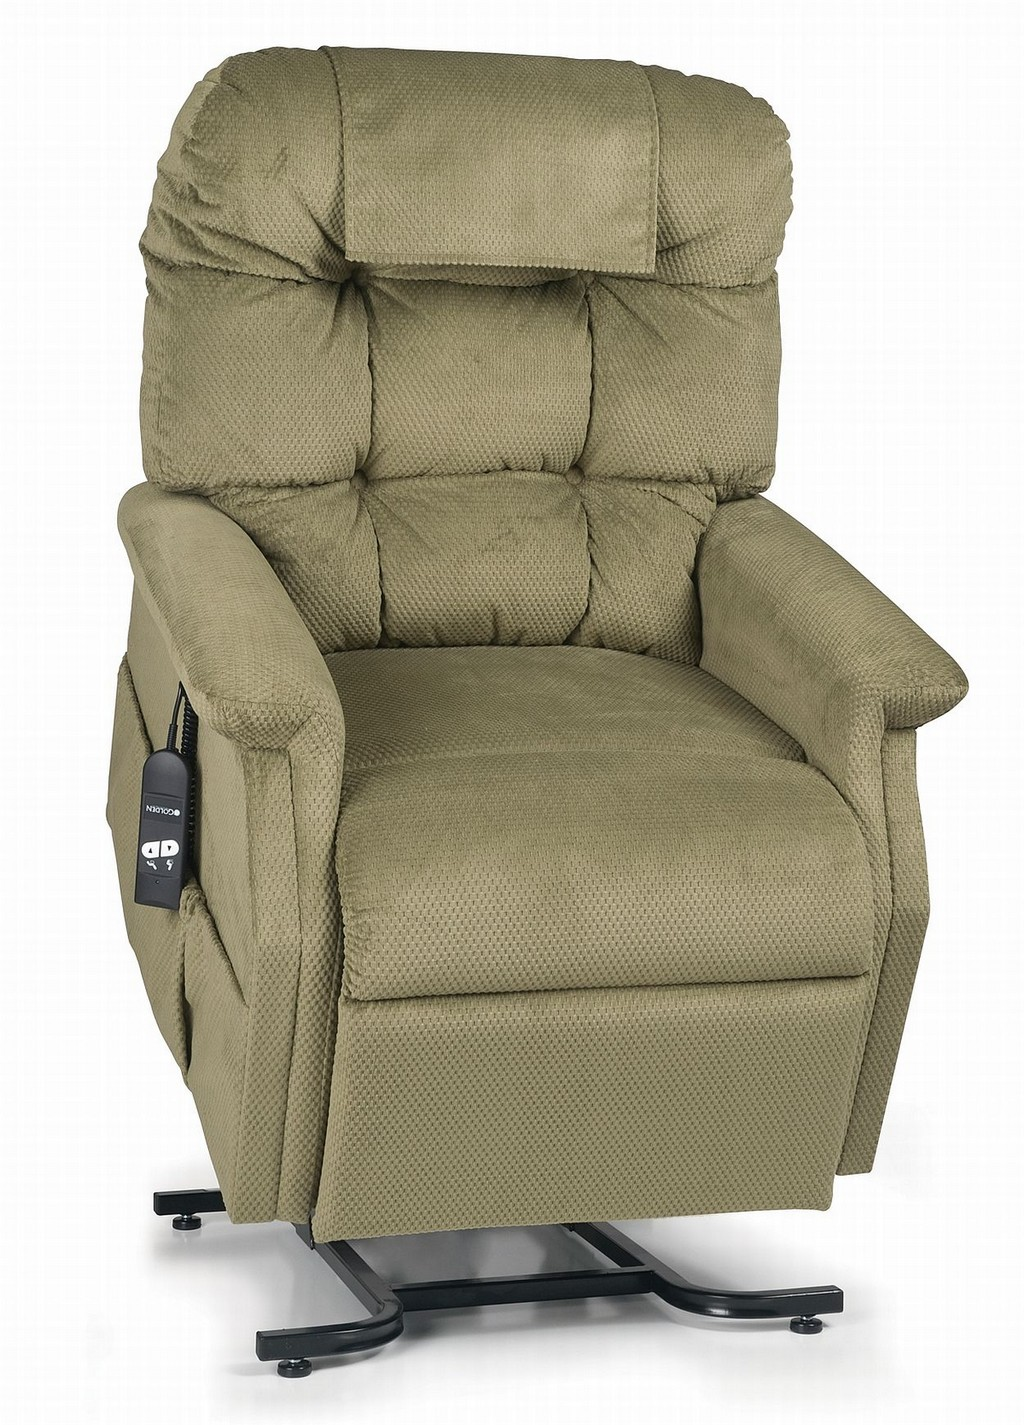 liftchair, liftchair recliner, pride lift chairs, recliner liftchair